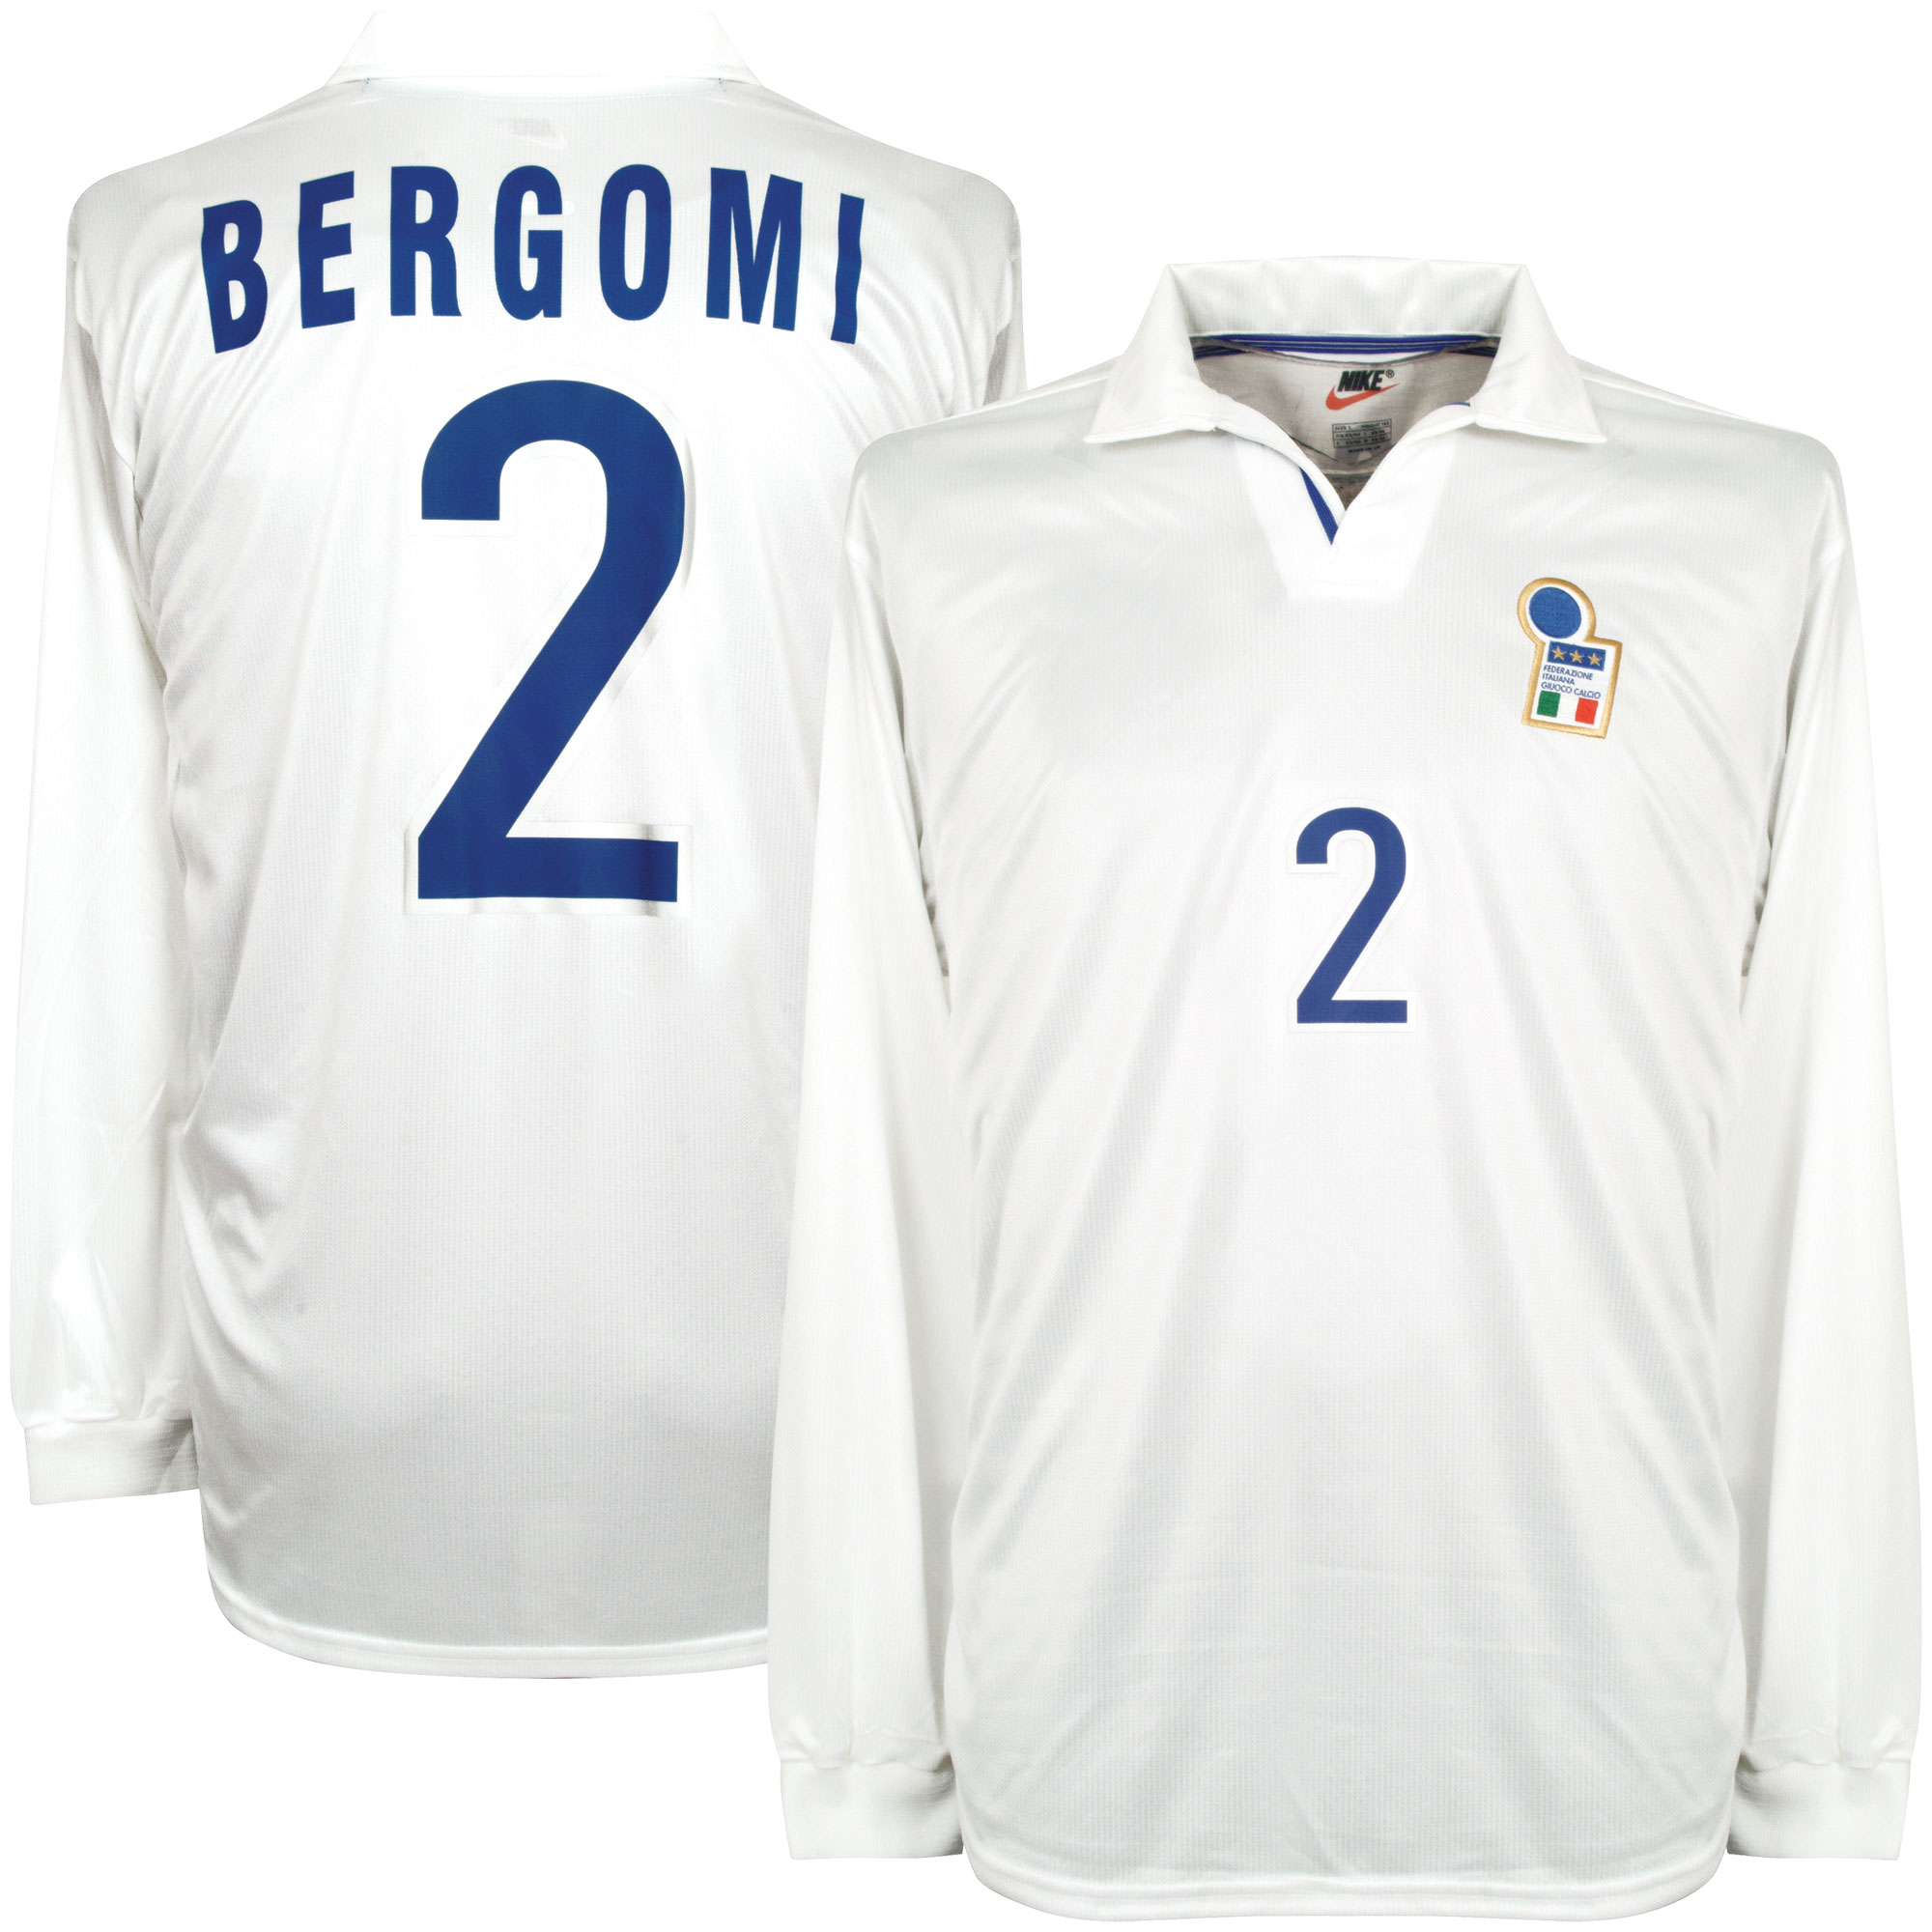 Nike Italy 1998-1999 Away Shirt L/S New (w/tags) Condition (Great) Match Issue BERGOMI #2 - Size